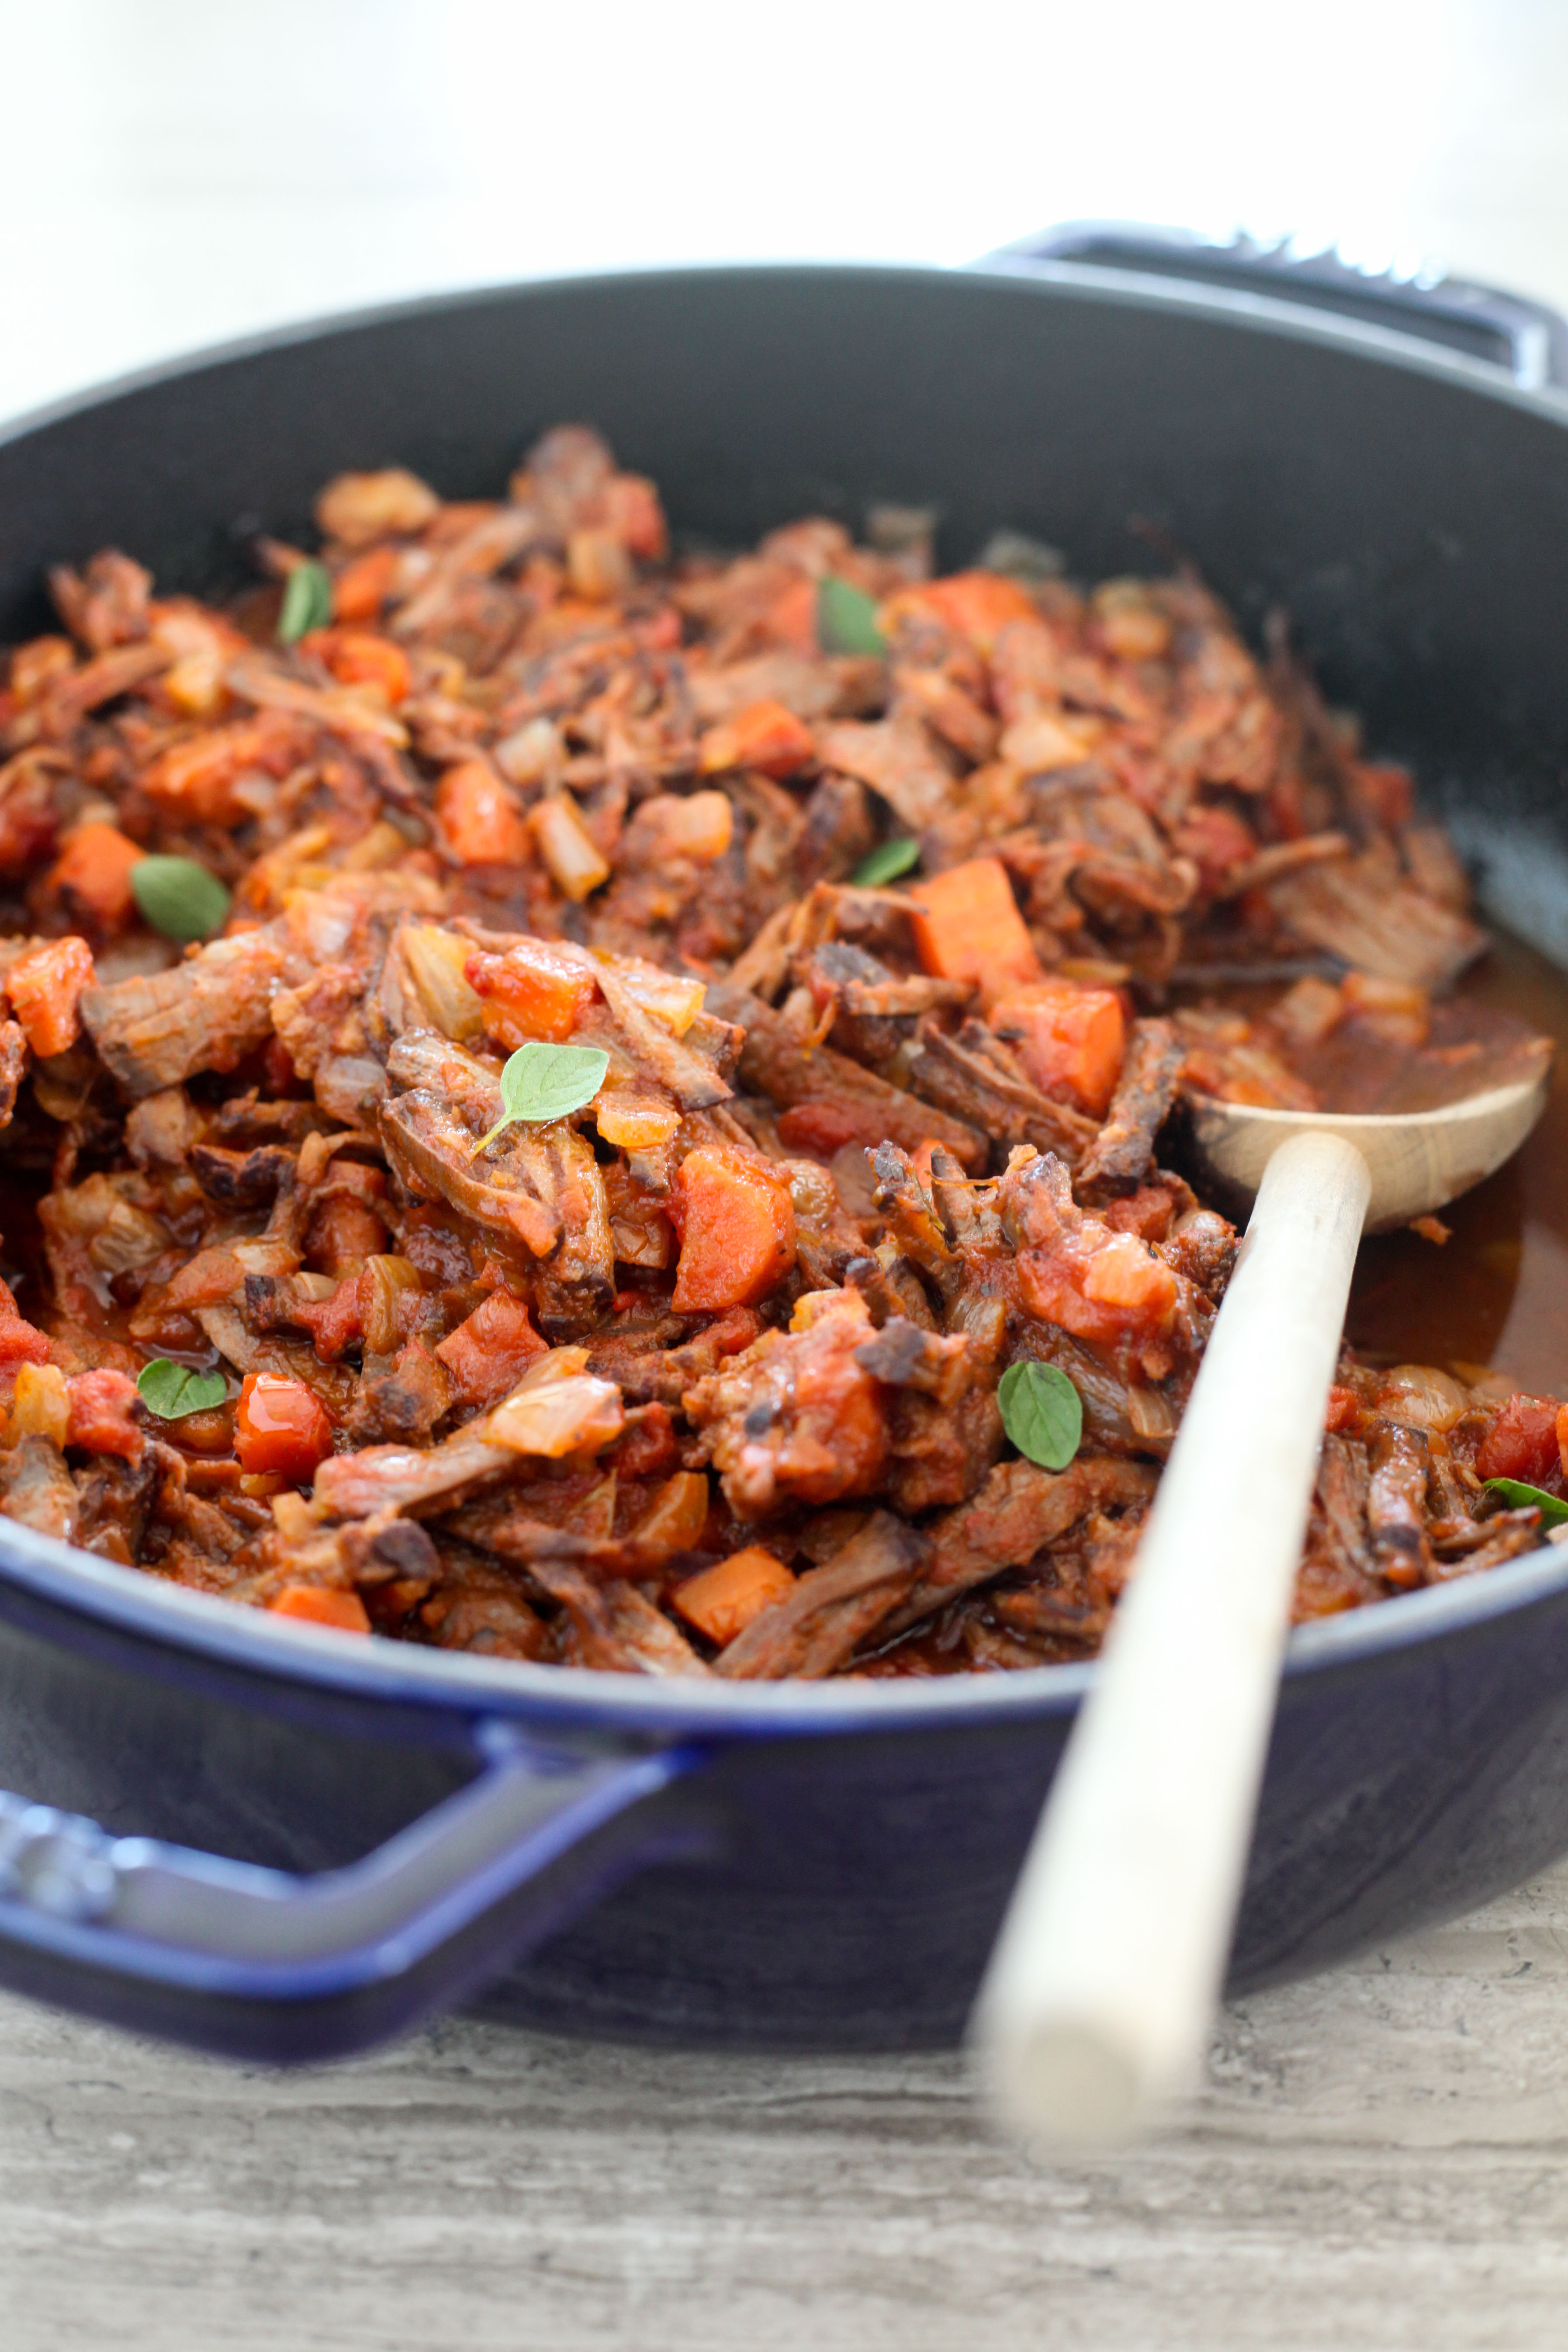 Italian Brisket With Tomatoes, Onions, and Carrots | amodestfeast.com | @amodestfeast